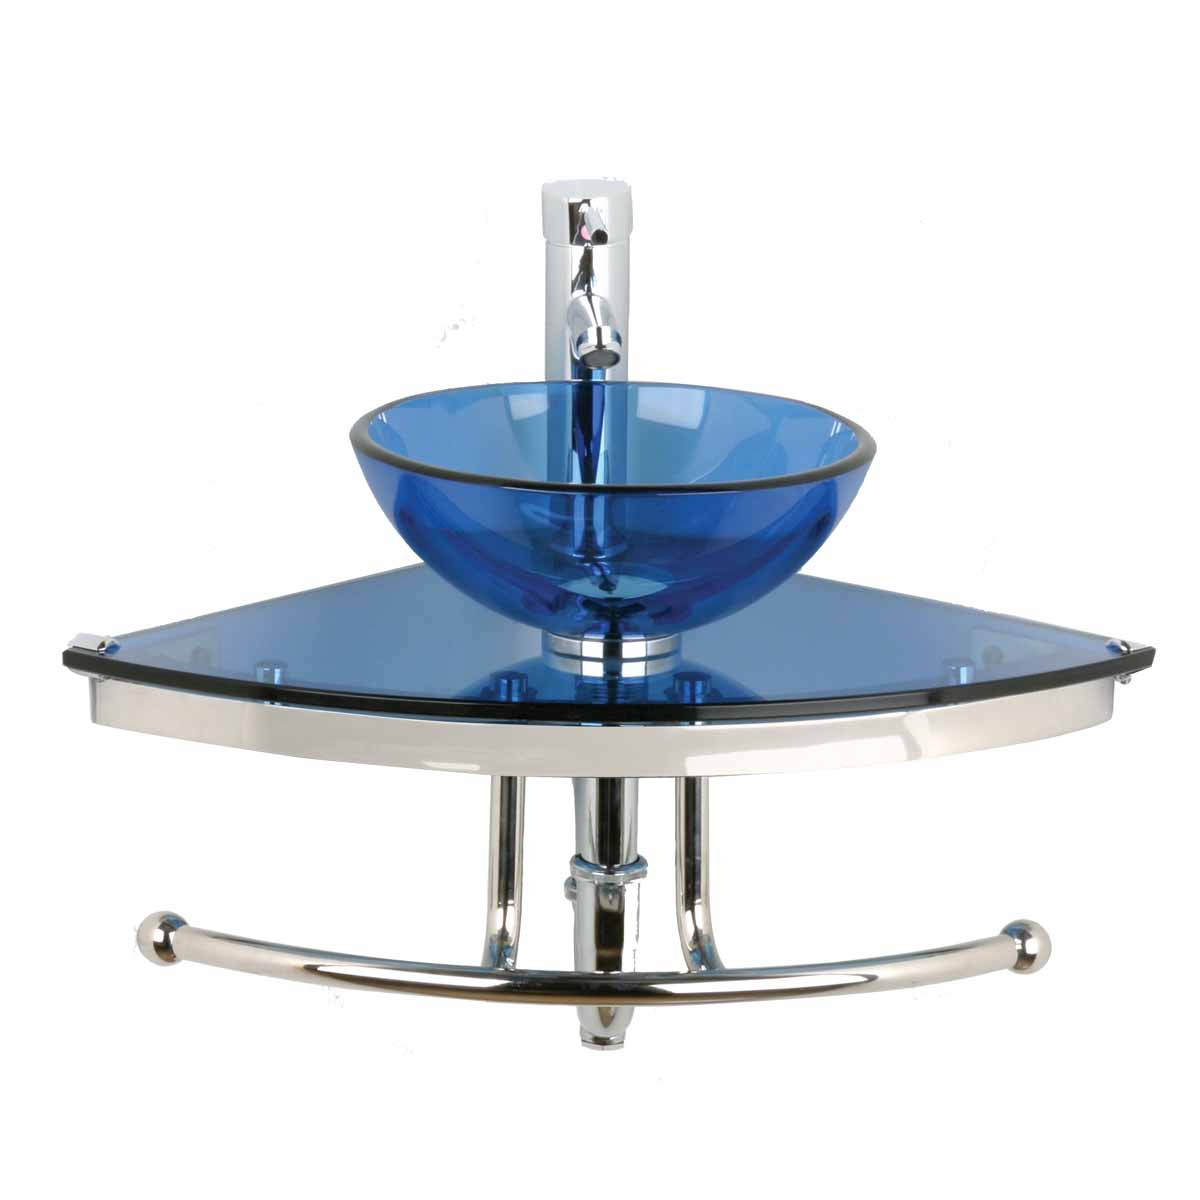 Unique Tempered Blue Glass Wall Mount Corner Vessel Sink